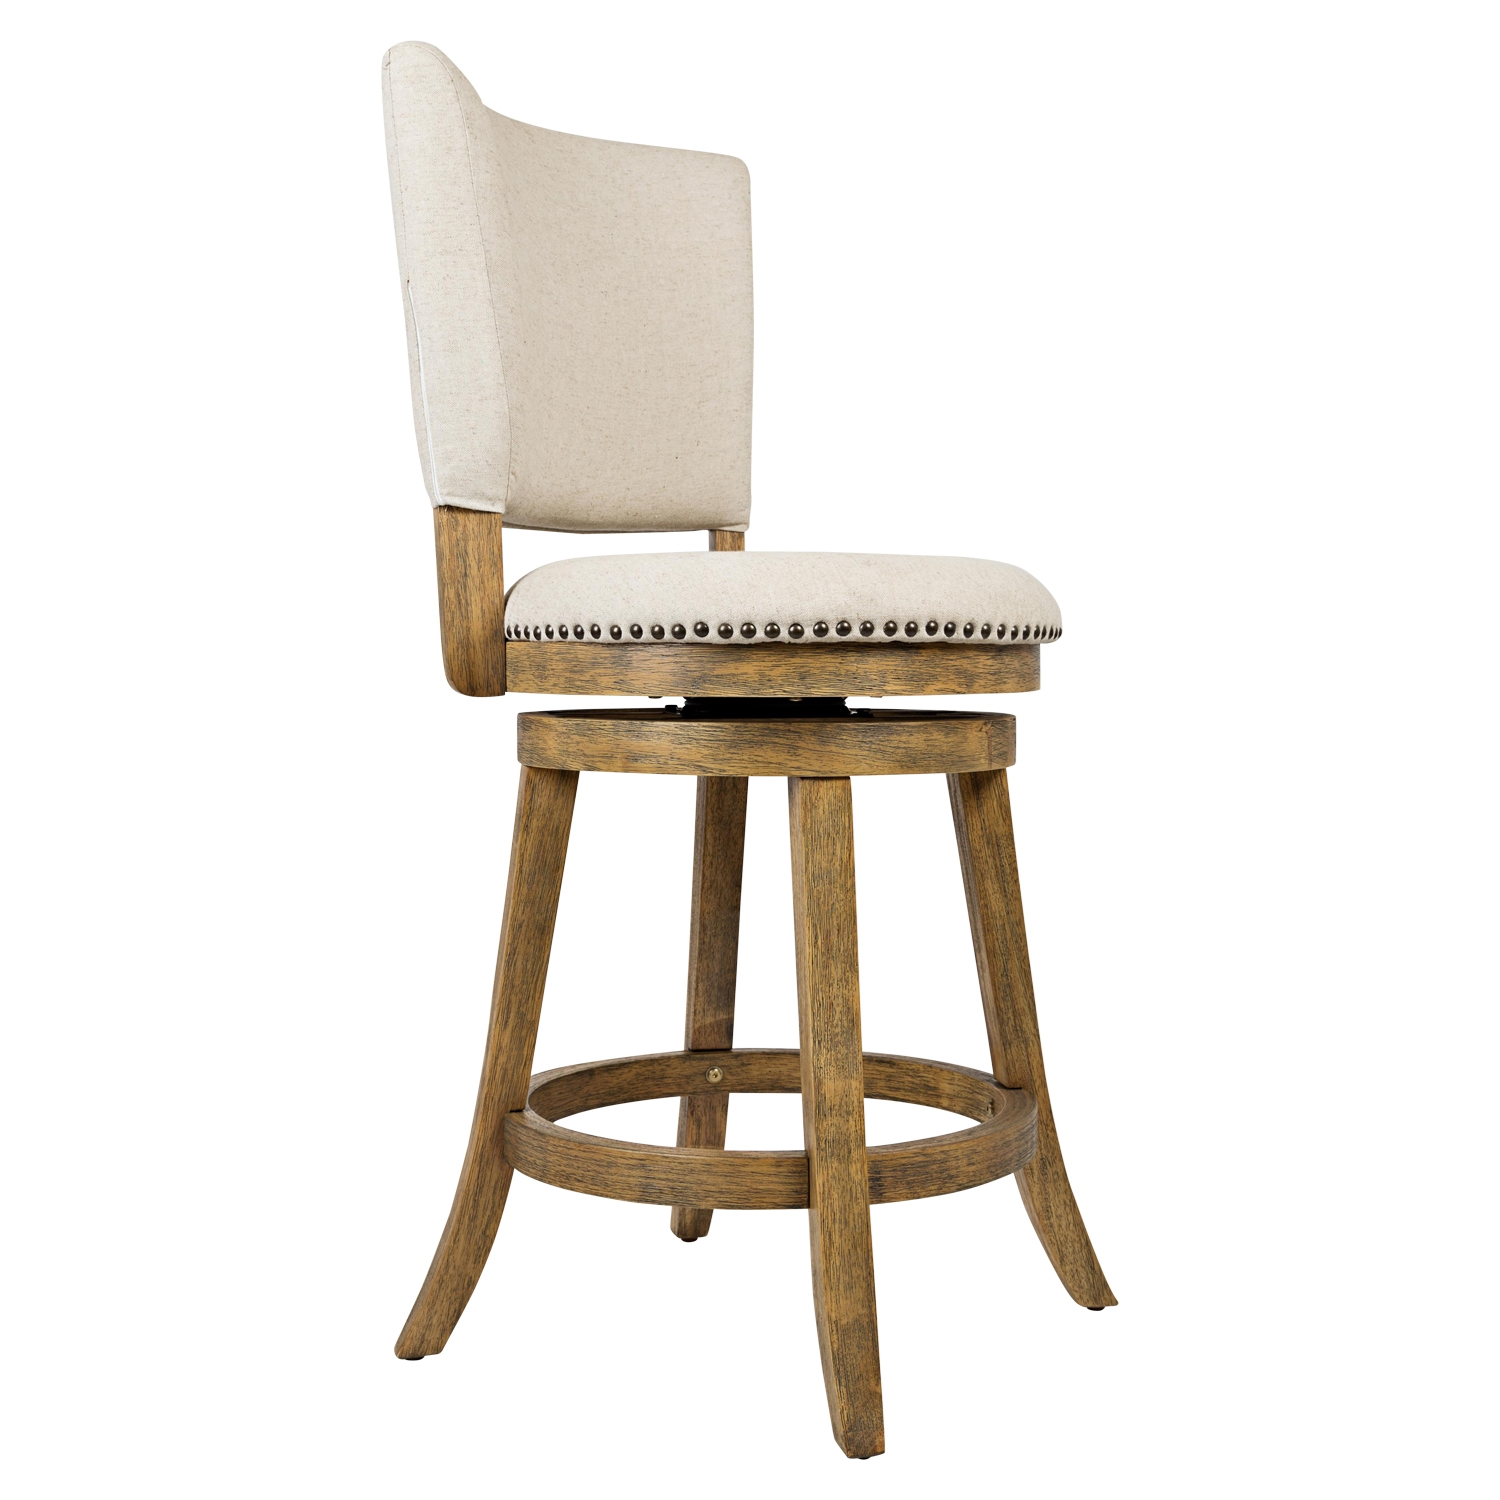 Turner's Landing 7 Pieces Dining Set - Swivel Stools, Extension Table, Light Tobacco - JOFR-916-60-BSS333KD-SET